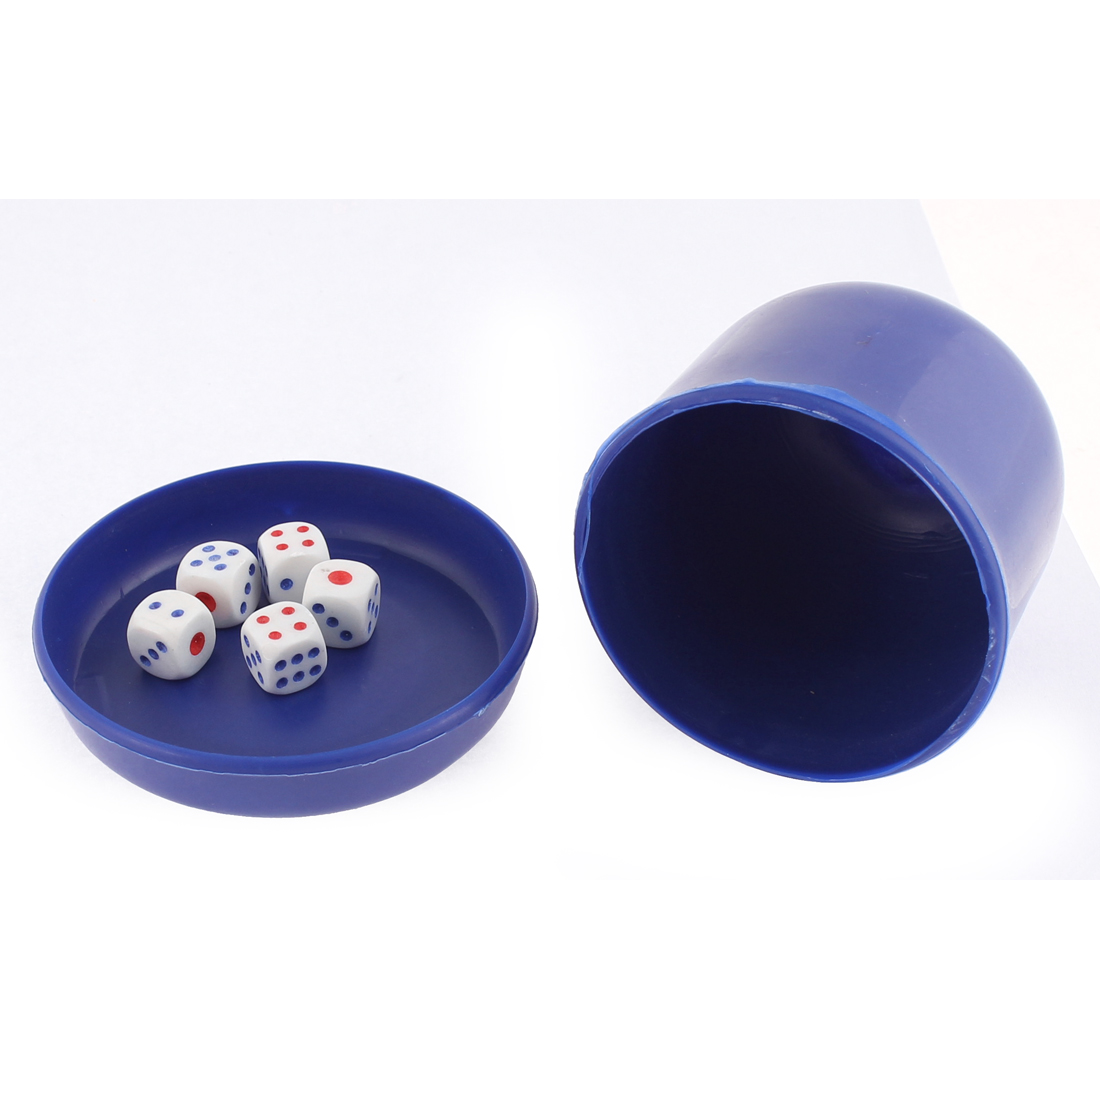 Game Dice Roller Cup Blue w 5 Dices - image 3 de 3